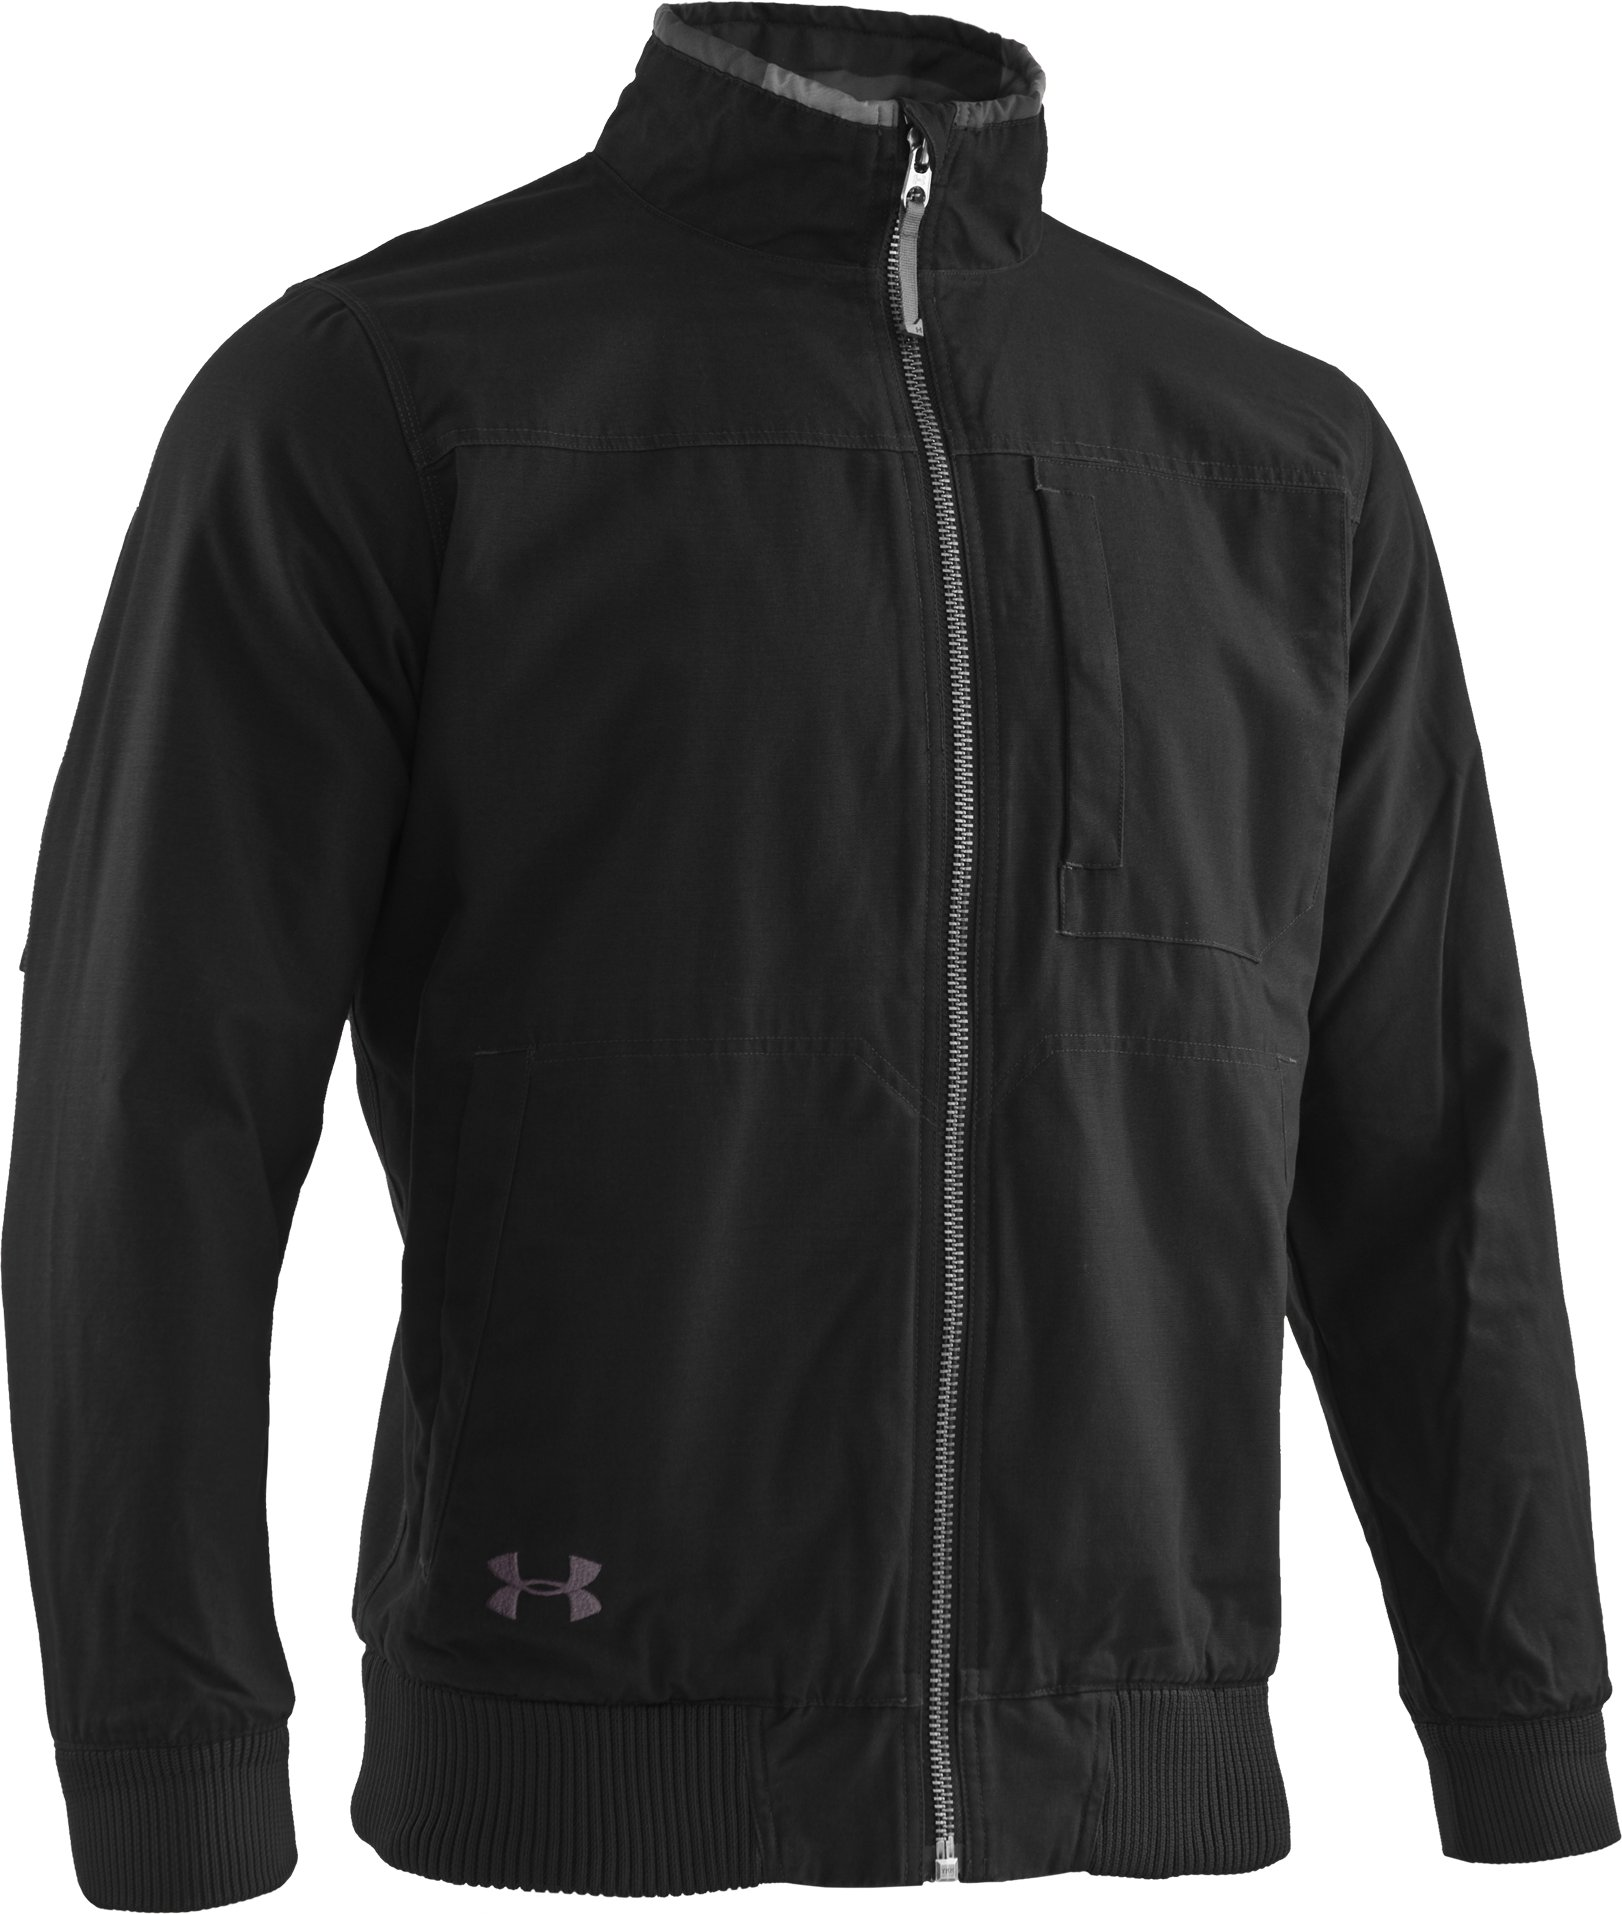 Men's Quilted Jacket, Black , undefined